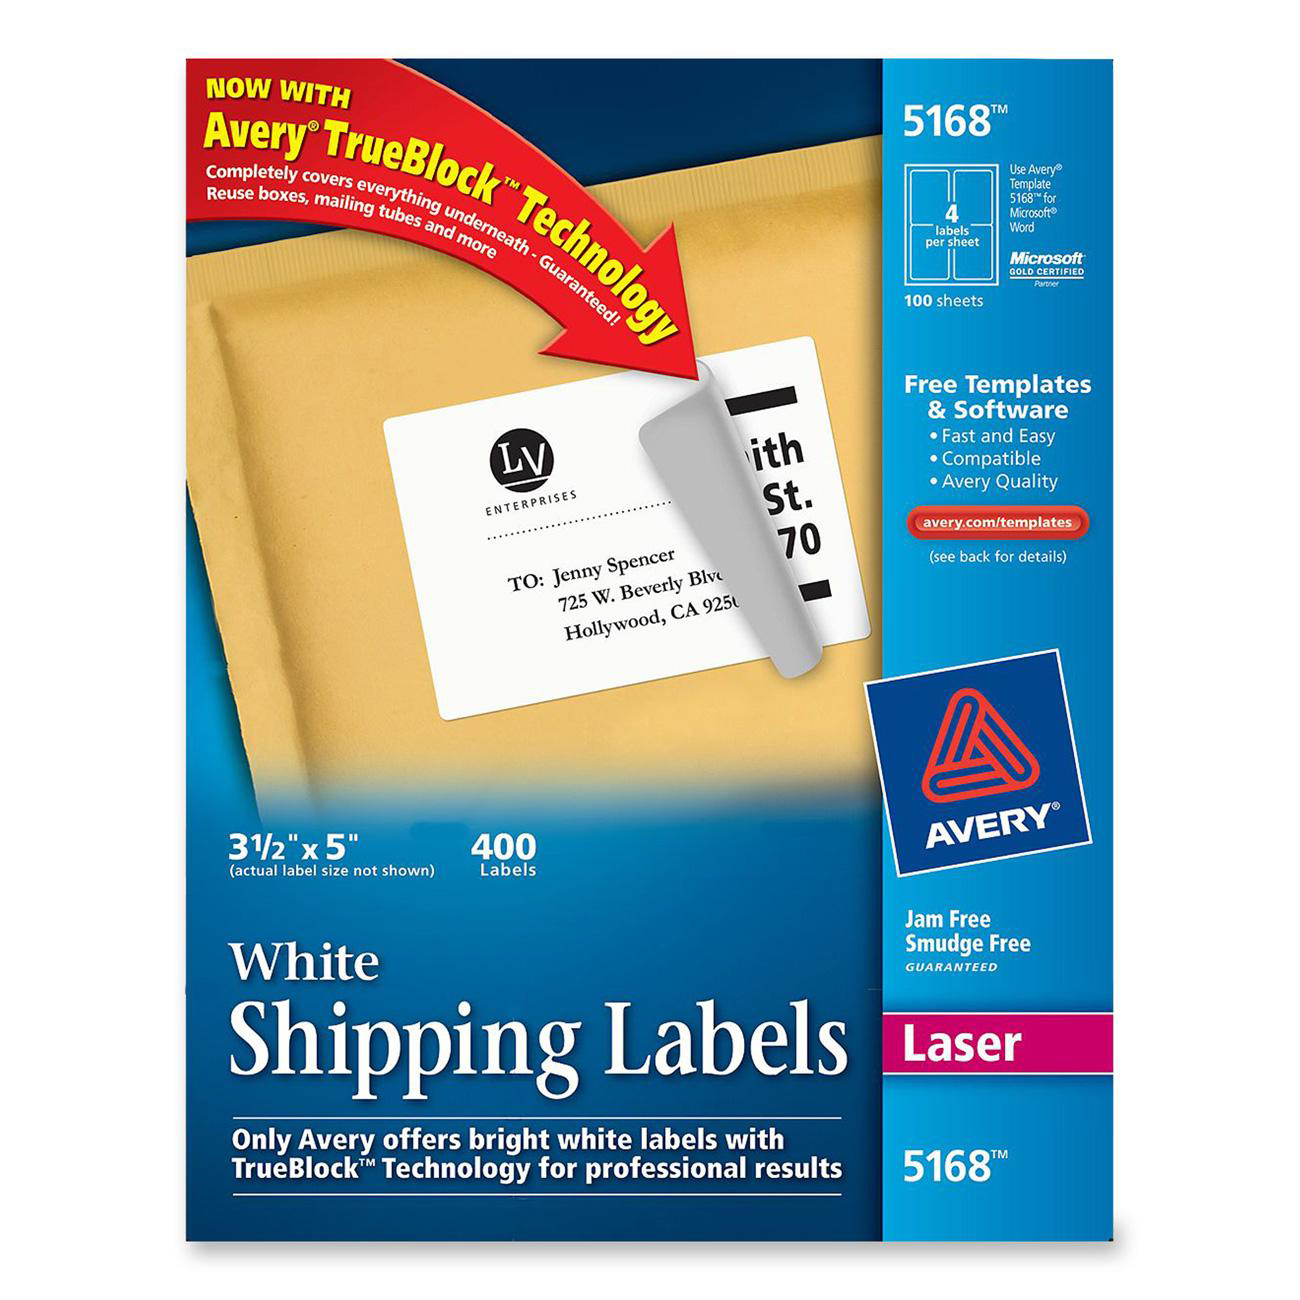 Printer for Avery 5168 label template